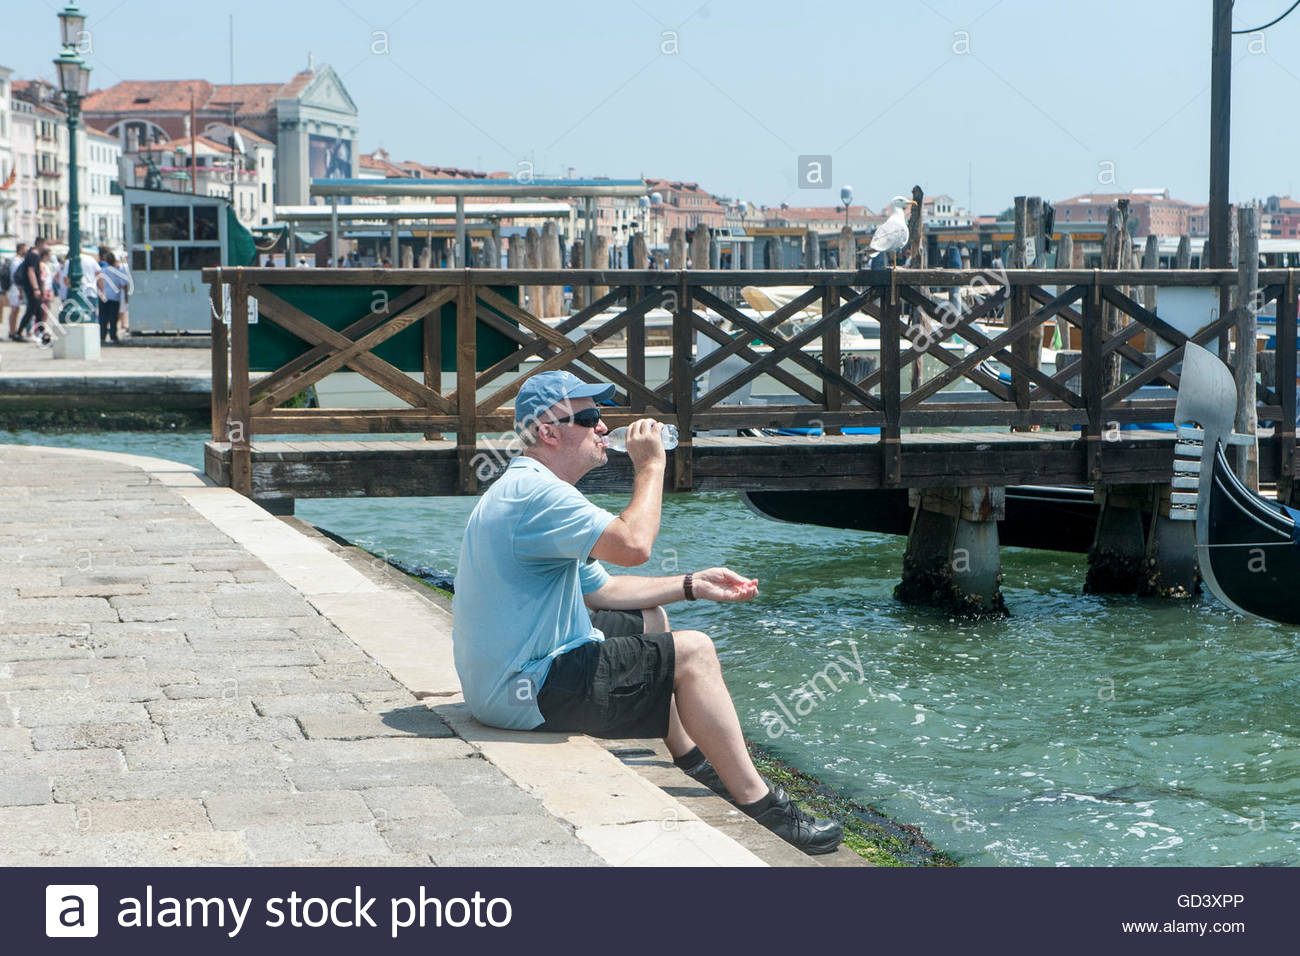 Venice, ITALY. 11 July, 2016. people try to cool off during the strong heat wave that hit Venice these days. Credit: - Stock Image